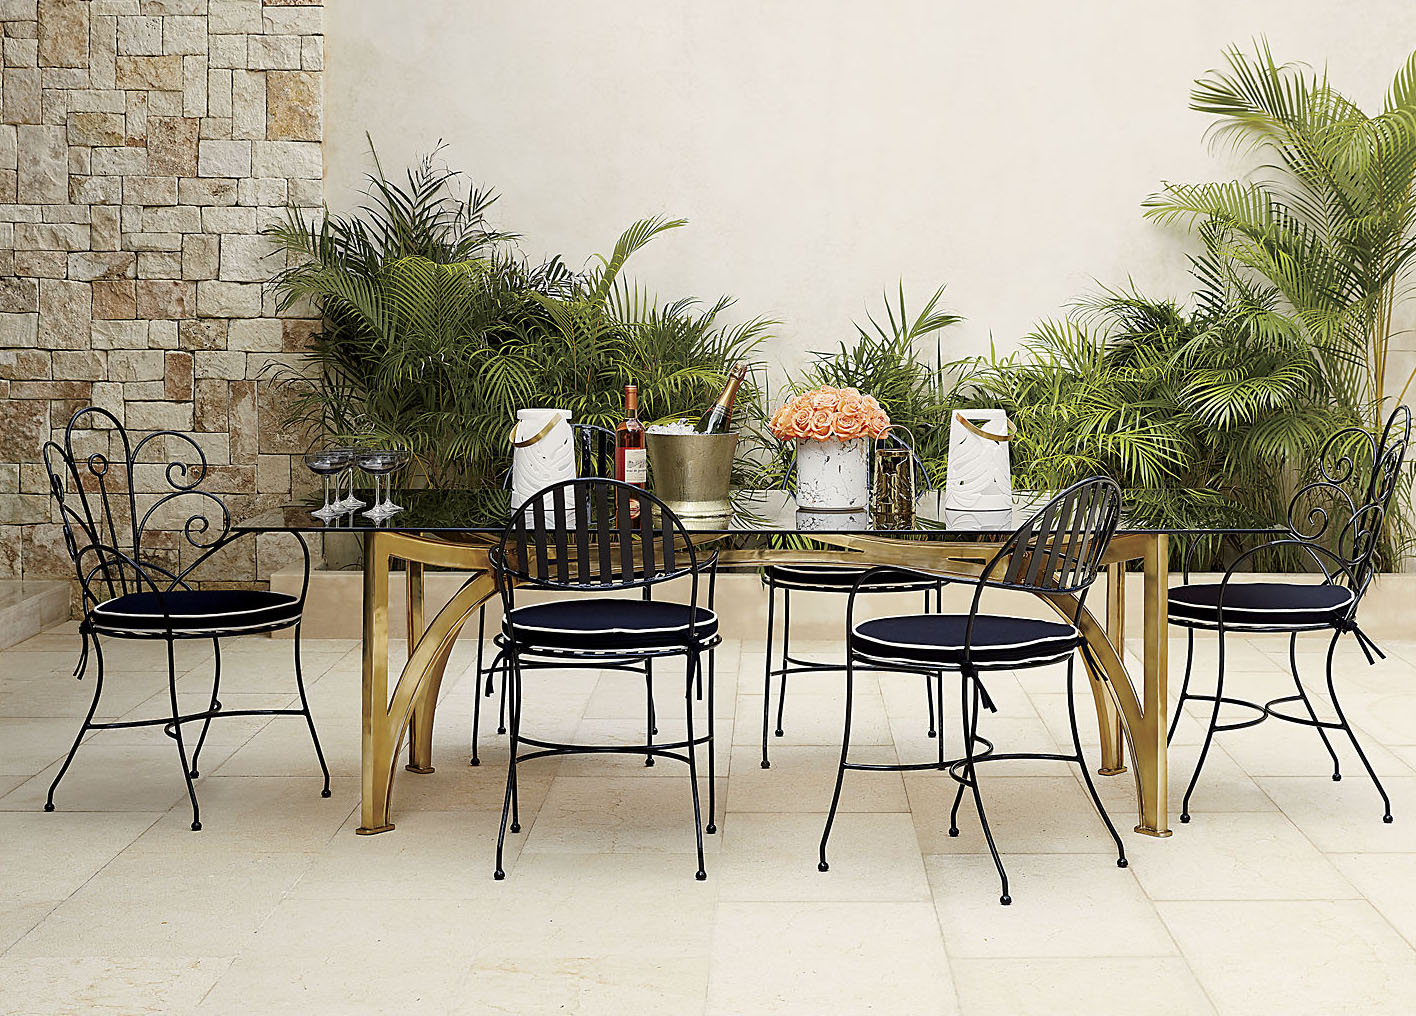 Outdoor Dining Let 39s Do Whimsical Outdoor Dining Making It Lovely